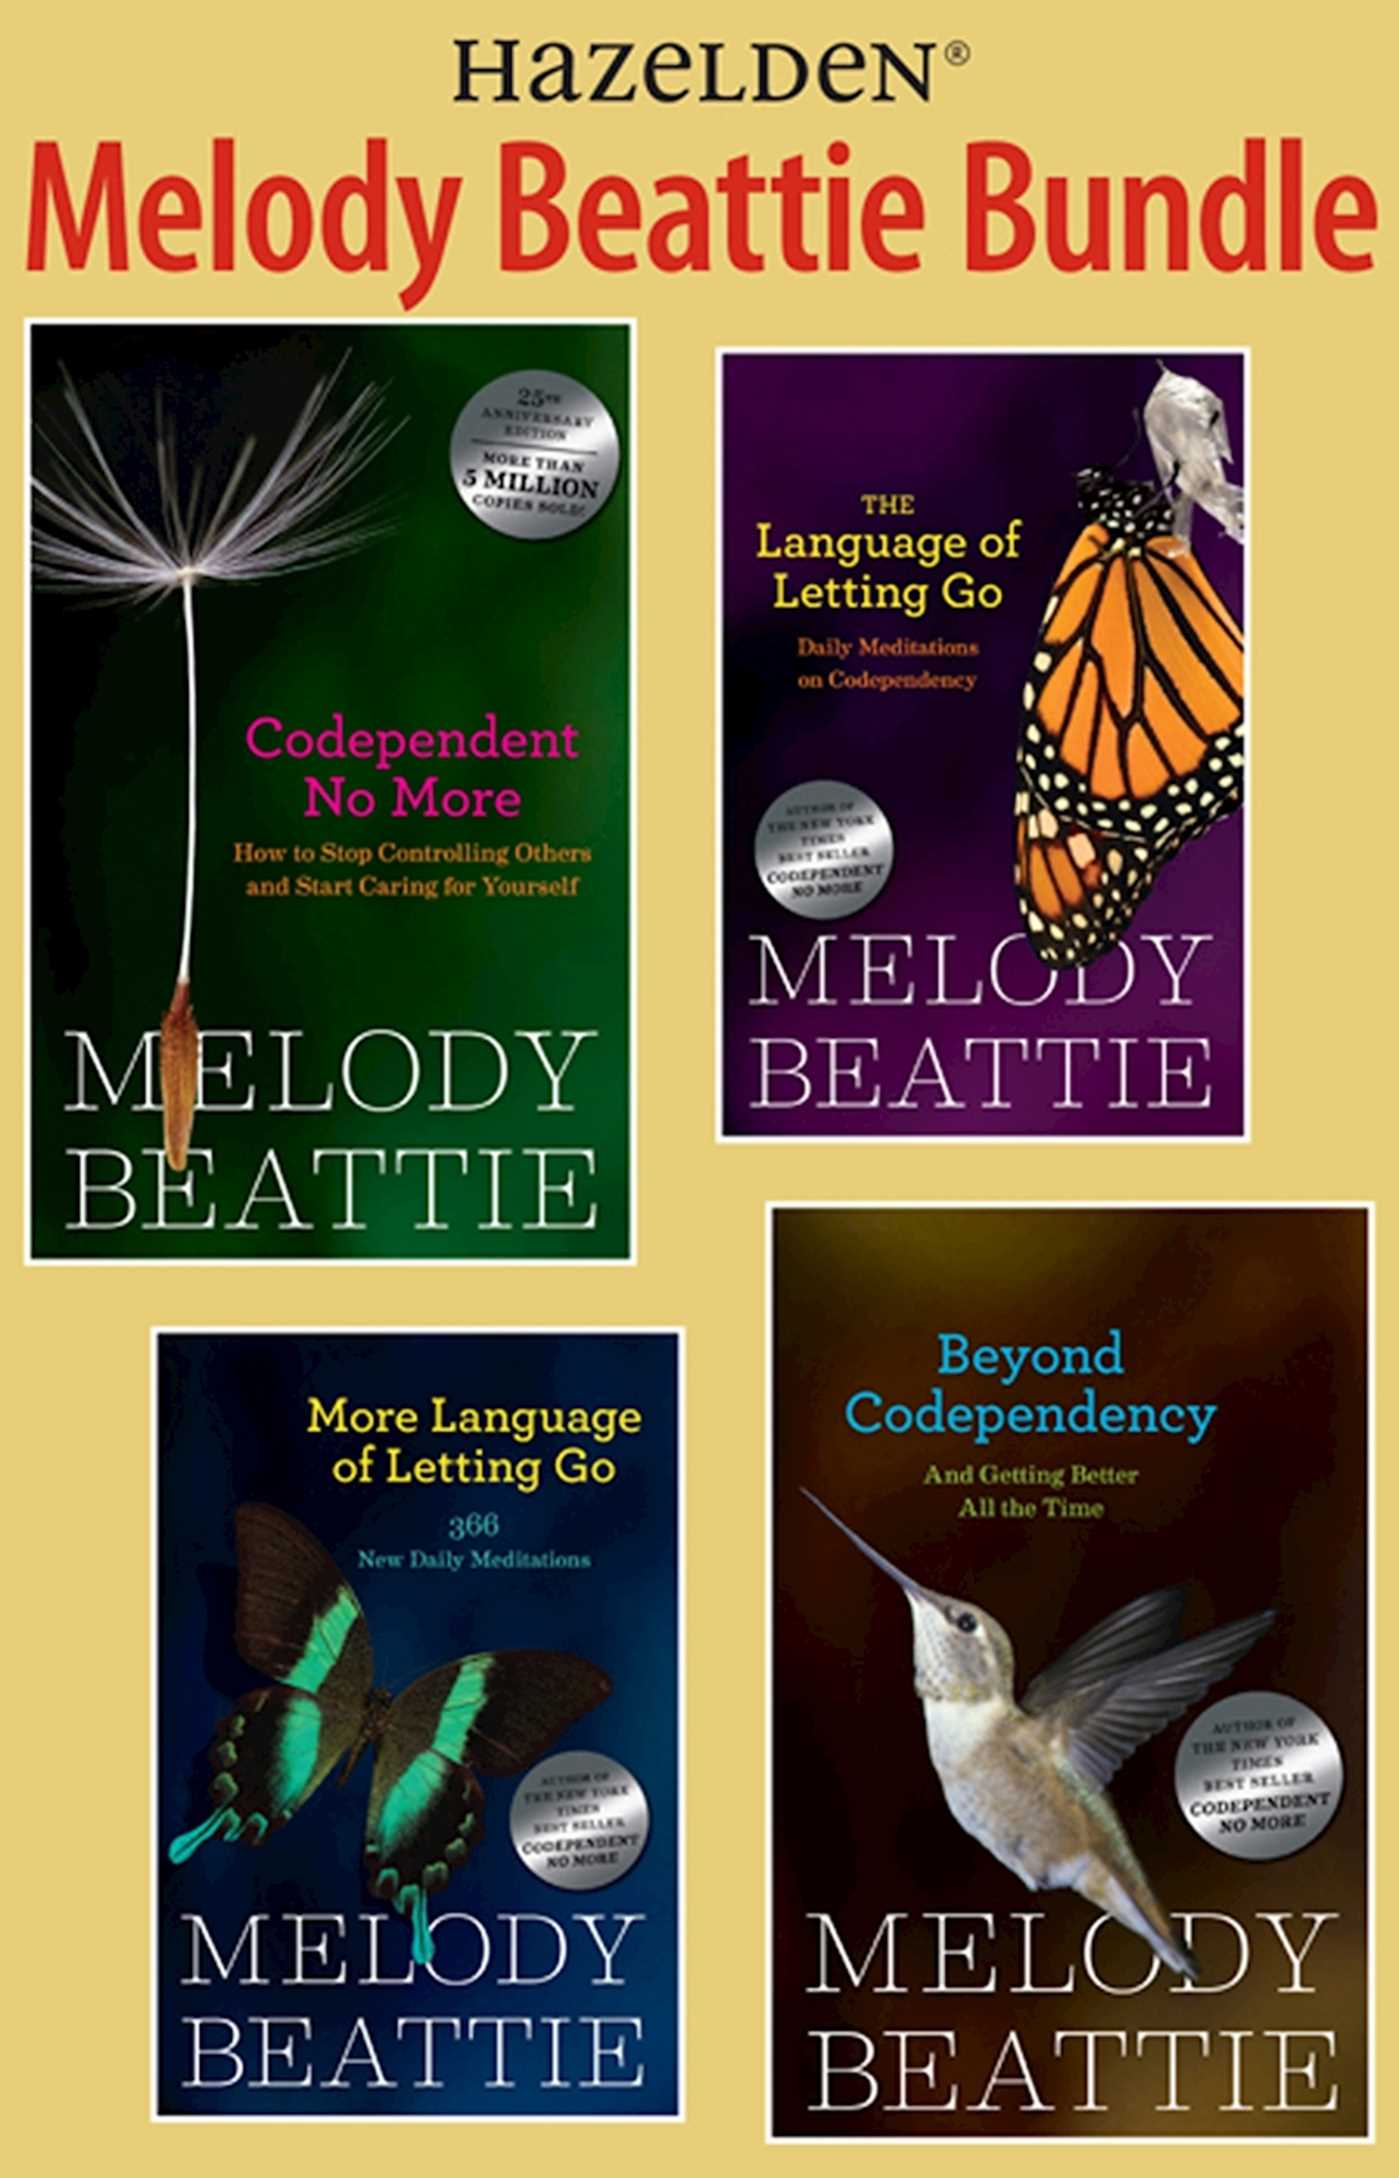 Book Cover Image (jpg): Melody Beattie 4 Title Bundle: Codependent No More  and 3 Other Best Sellers by M